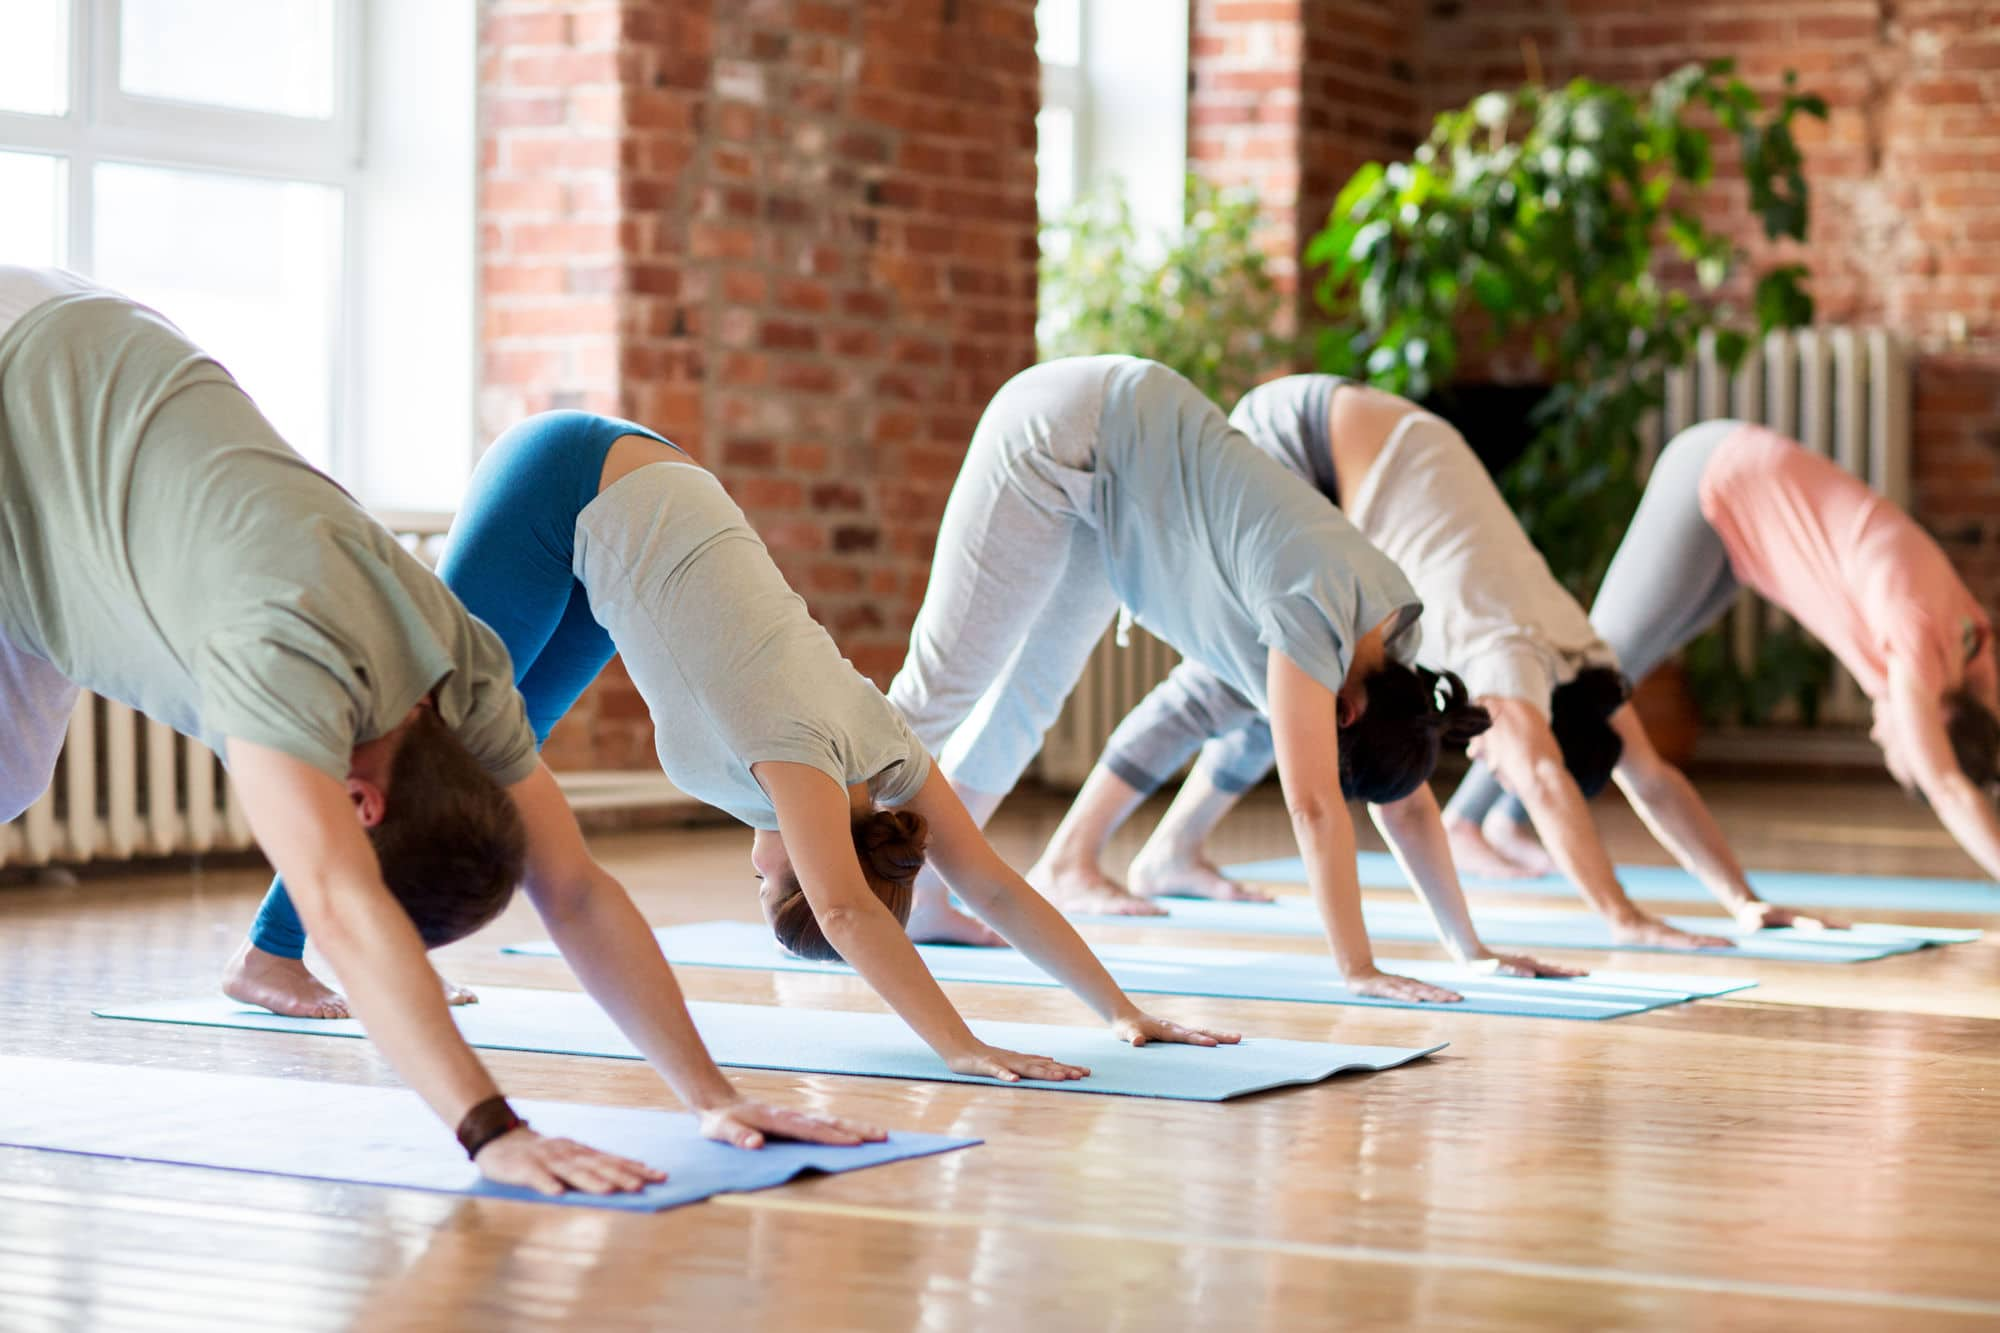 Fitness Sport And Healthy Lifestyle Concept Group Of People Doing Yoga Downward Facing Dog Pose On Mats At Studio Group Of People Doing Yoga Dog P